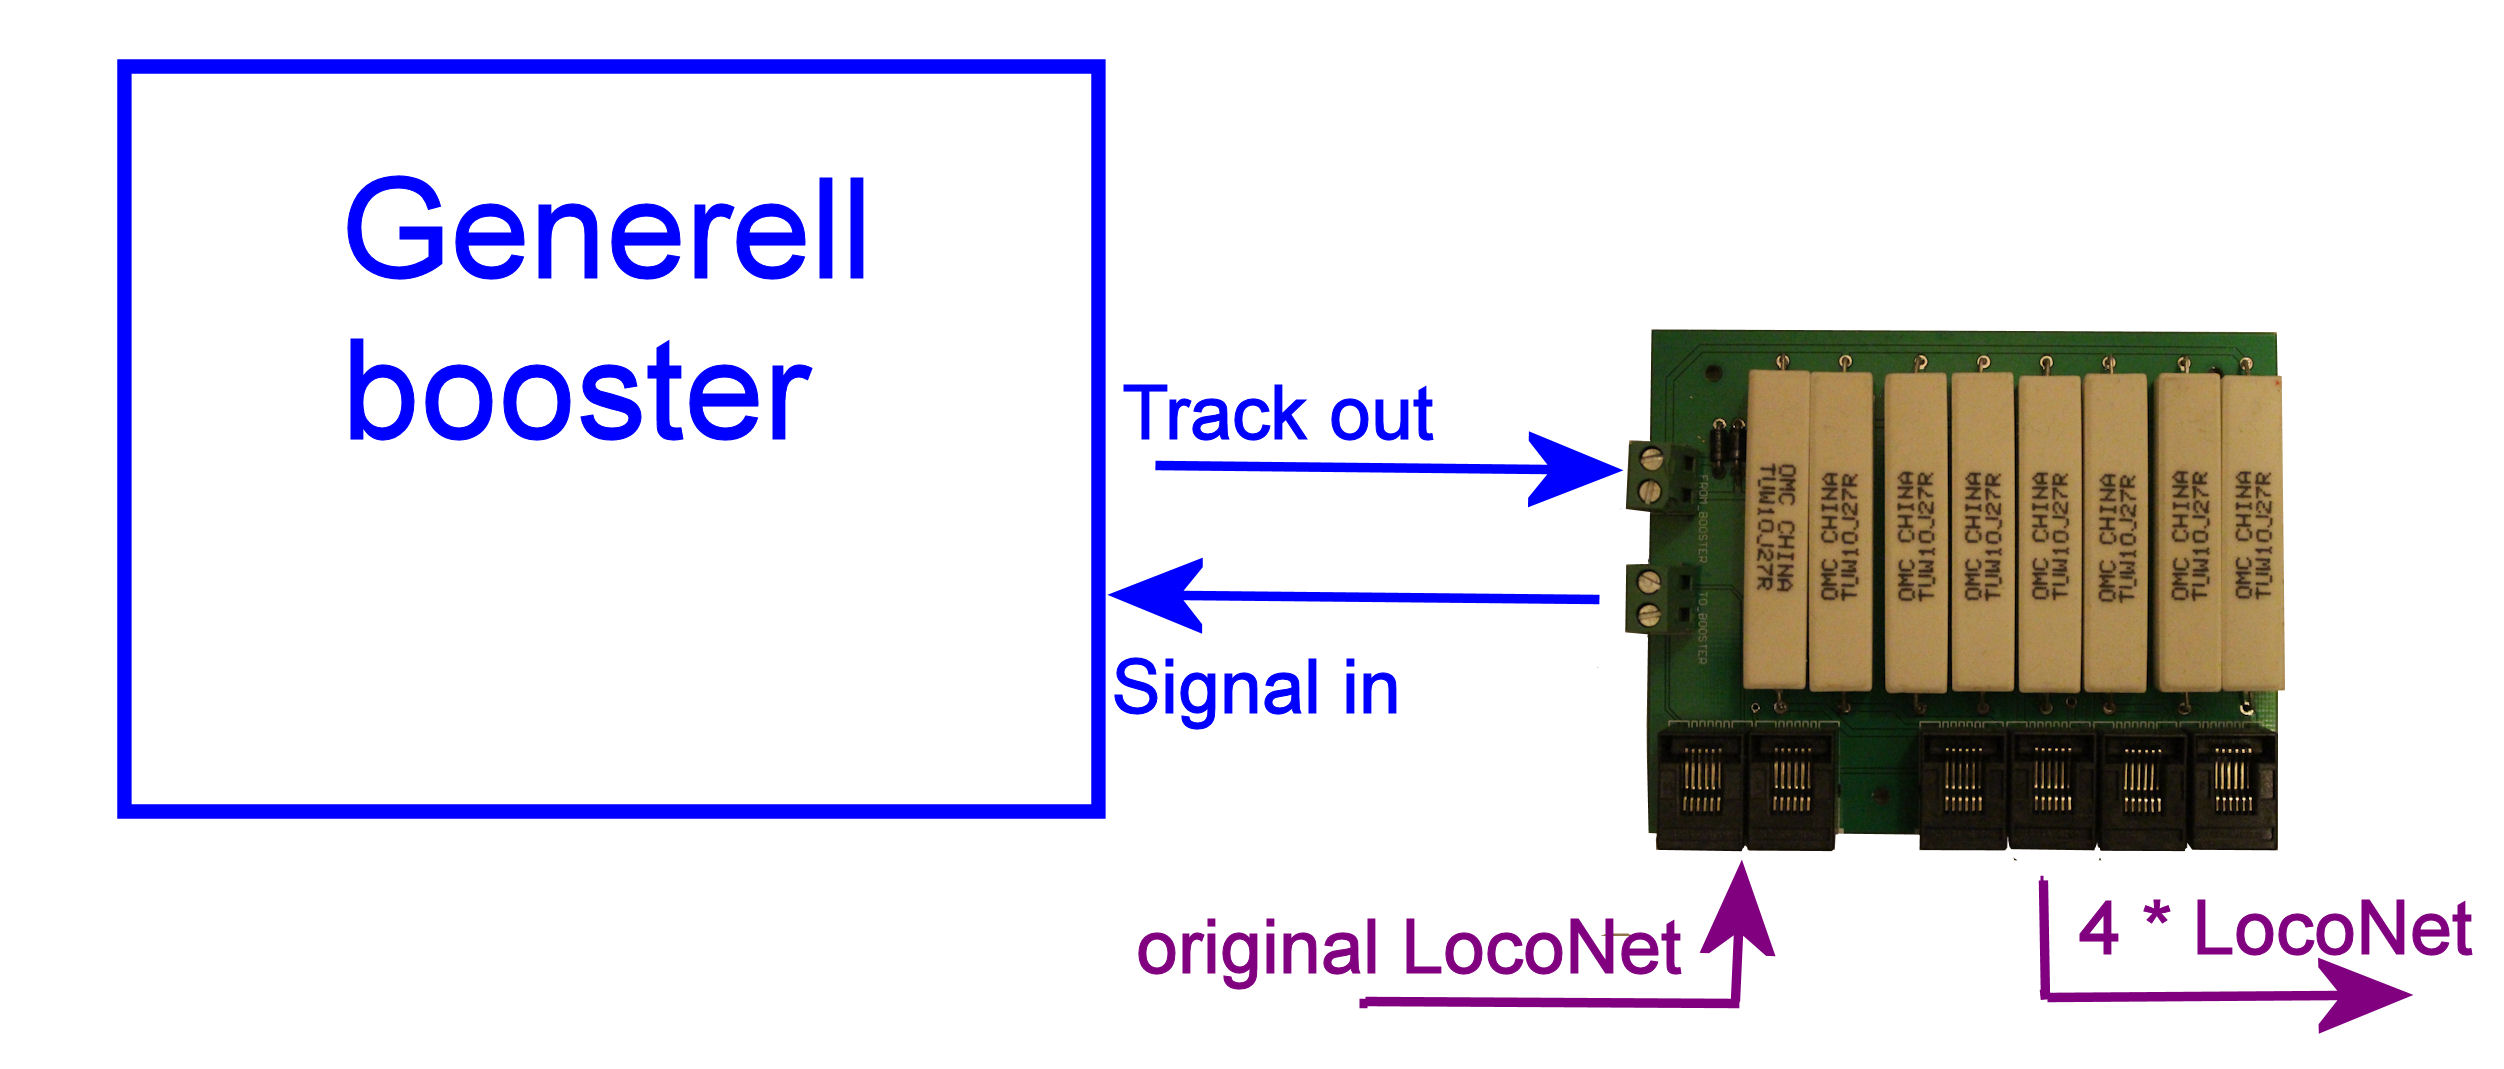 Digital Control And Electronics Current Delimeter For Rail Sync Loconet Dcc Wiring Diagram Connected With A Booster